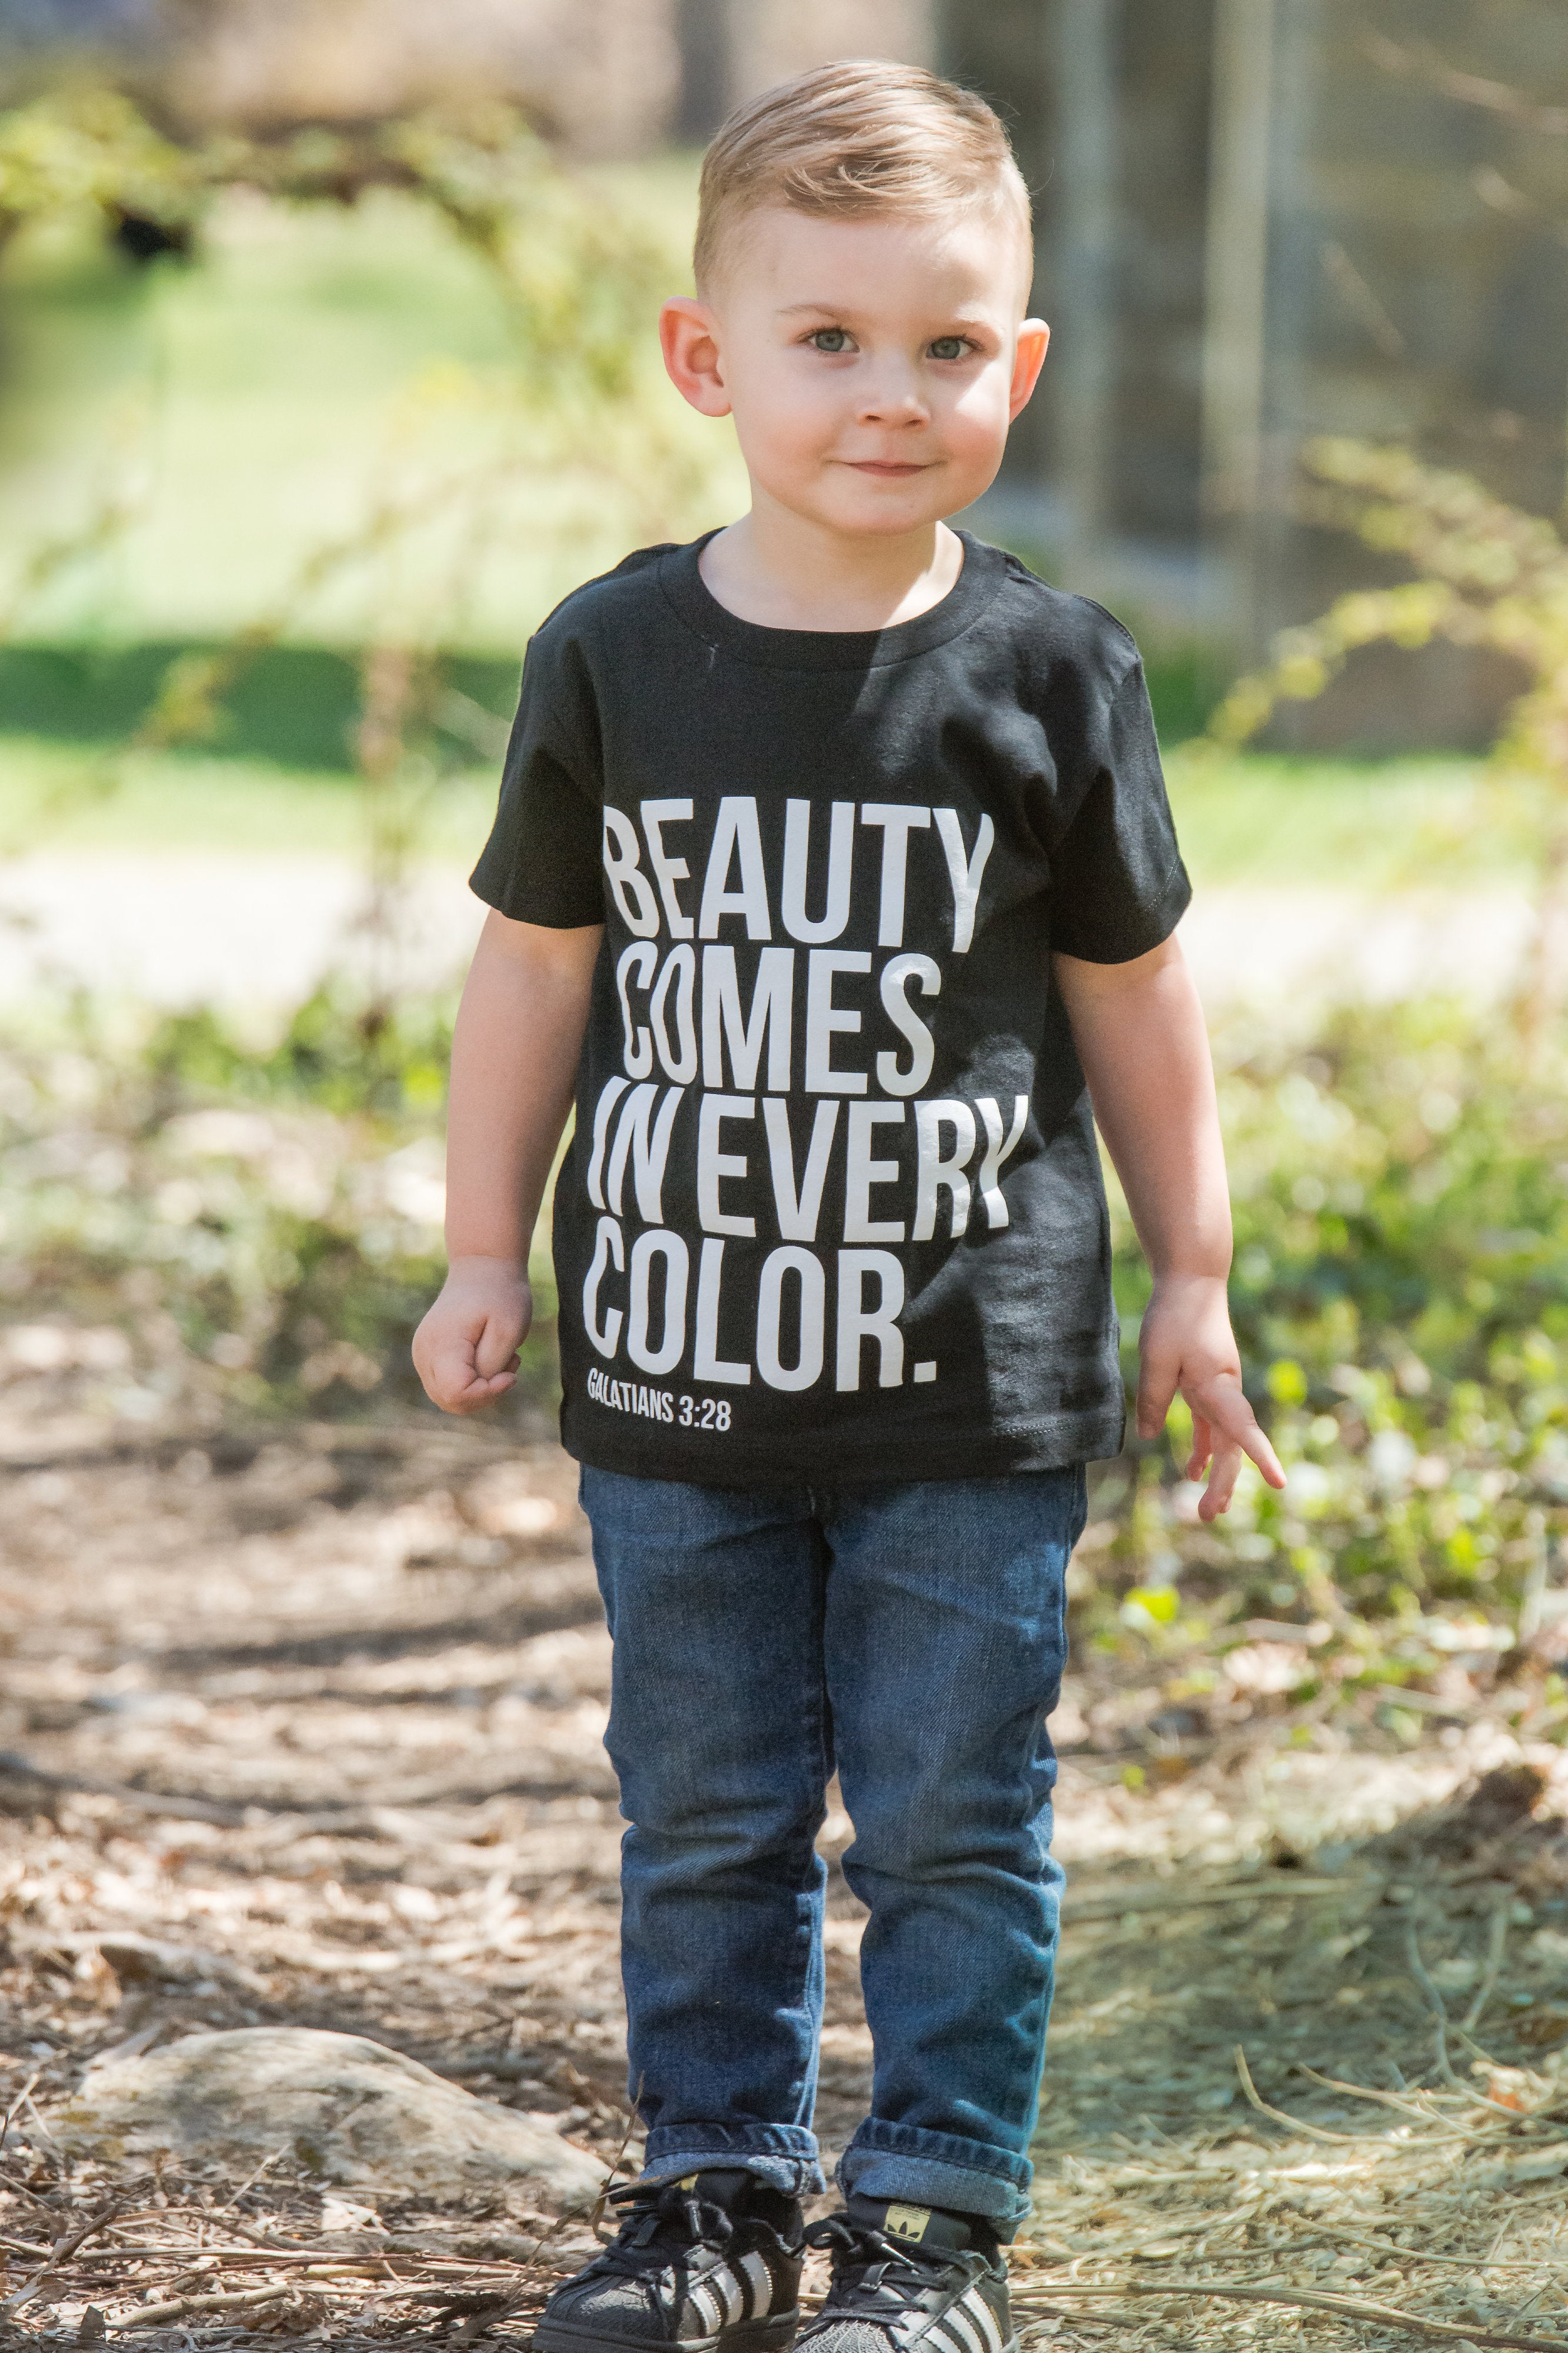 Beauty Comes in Every Color Toddler Tee